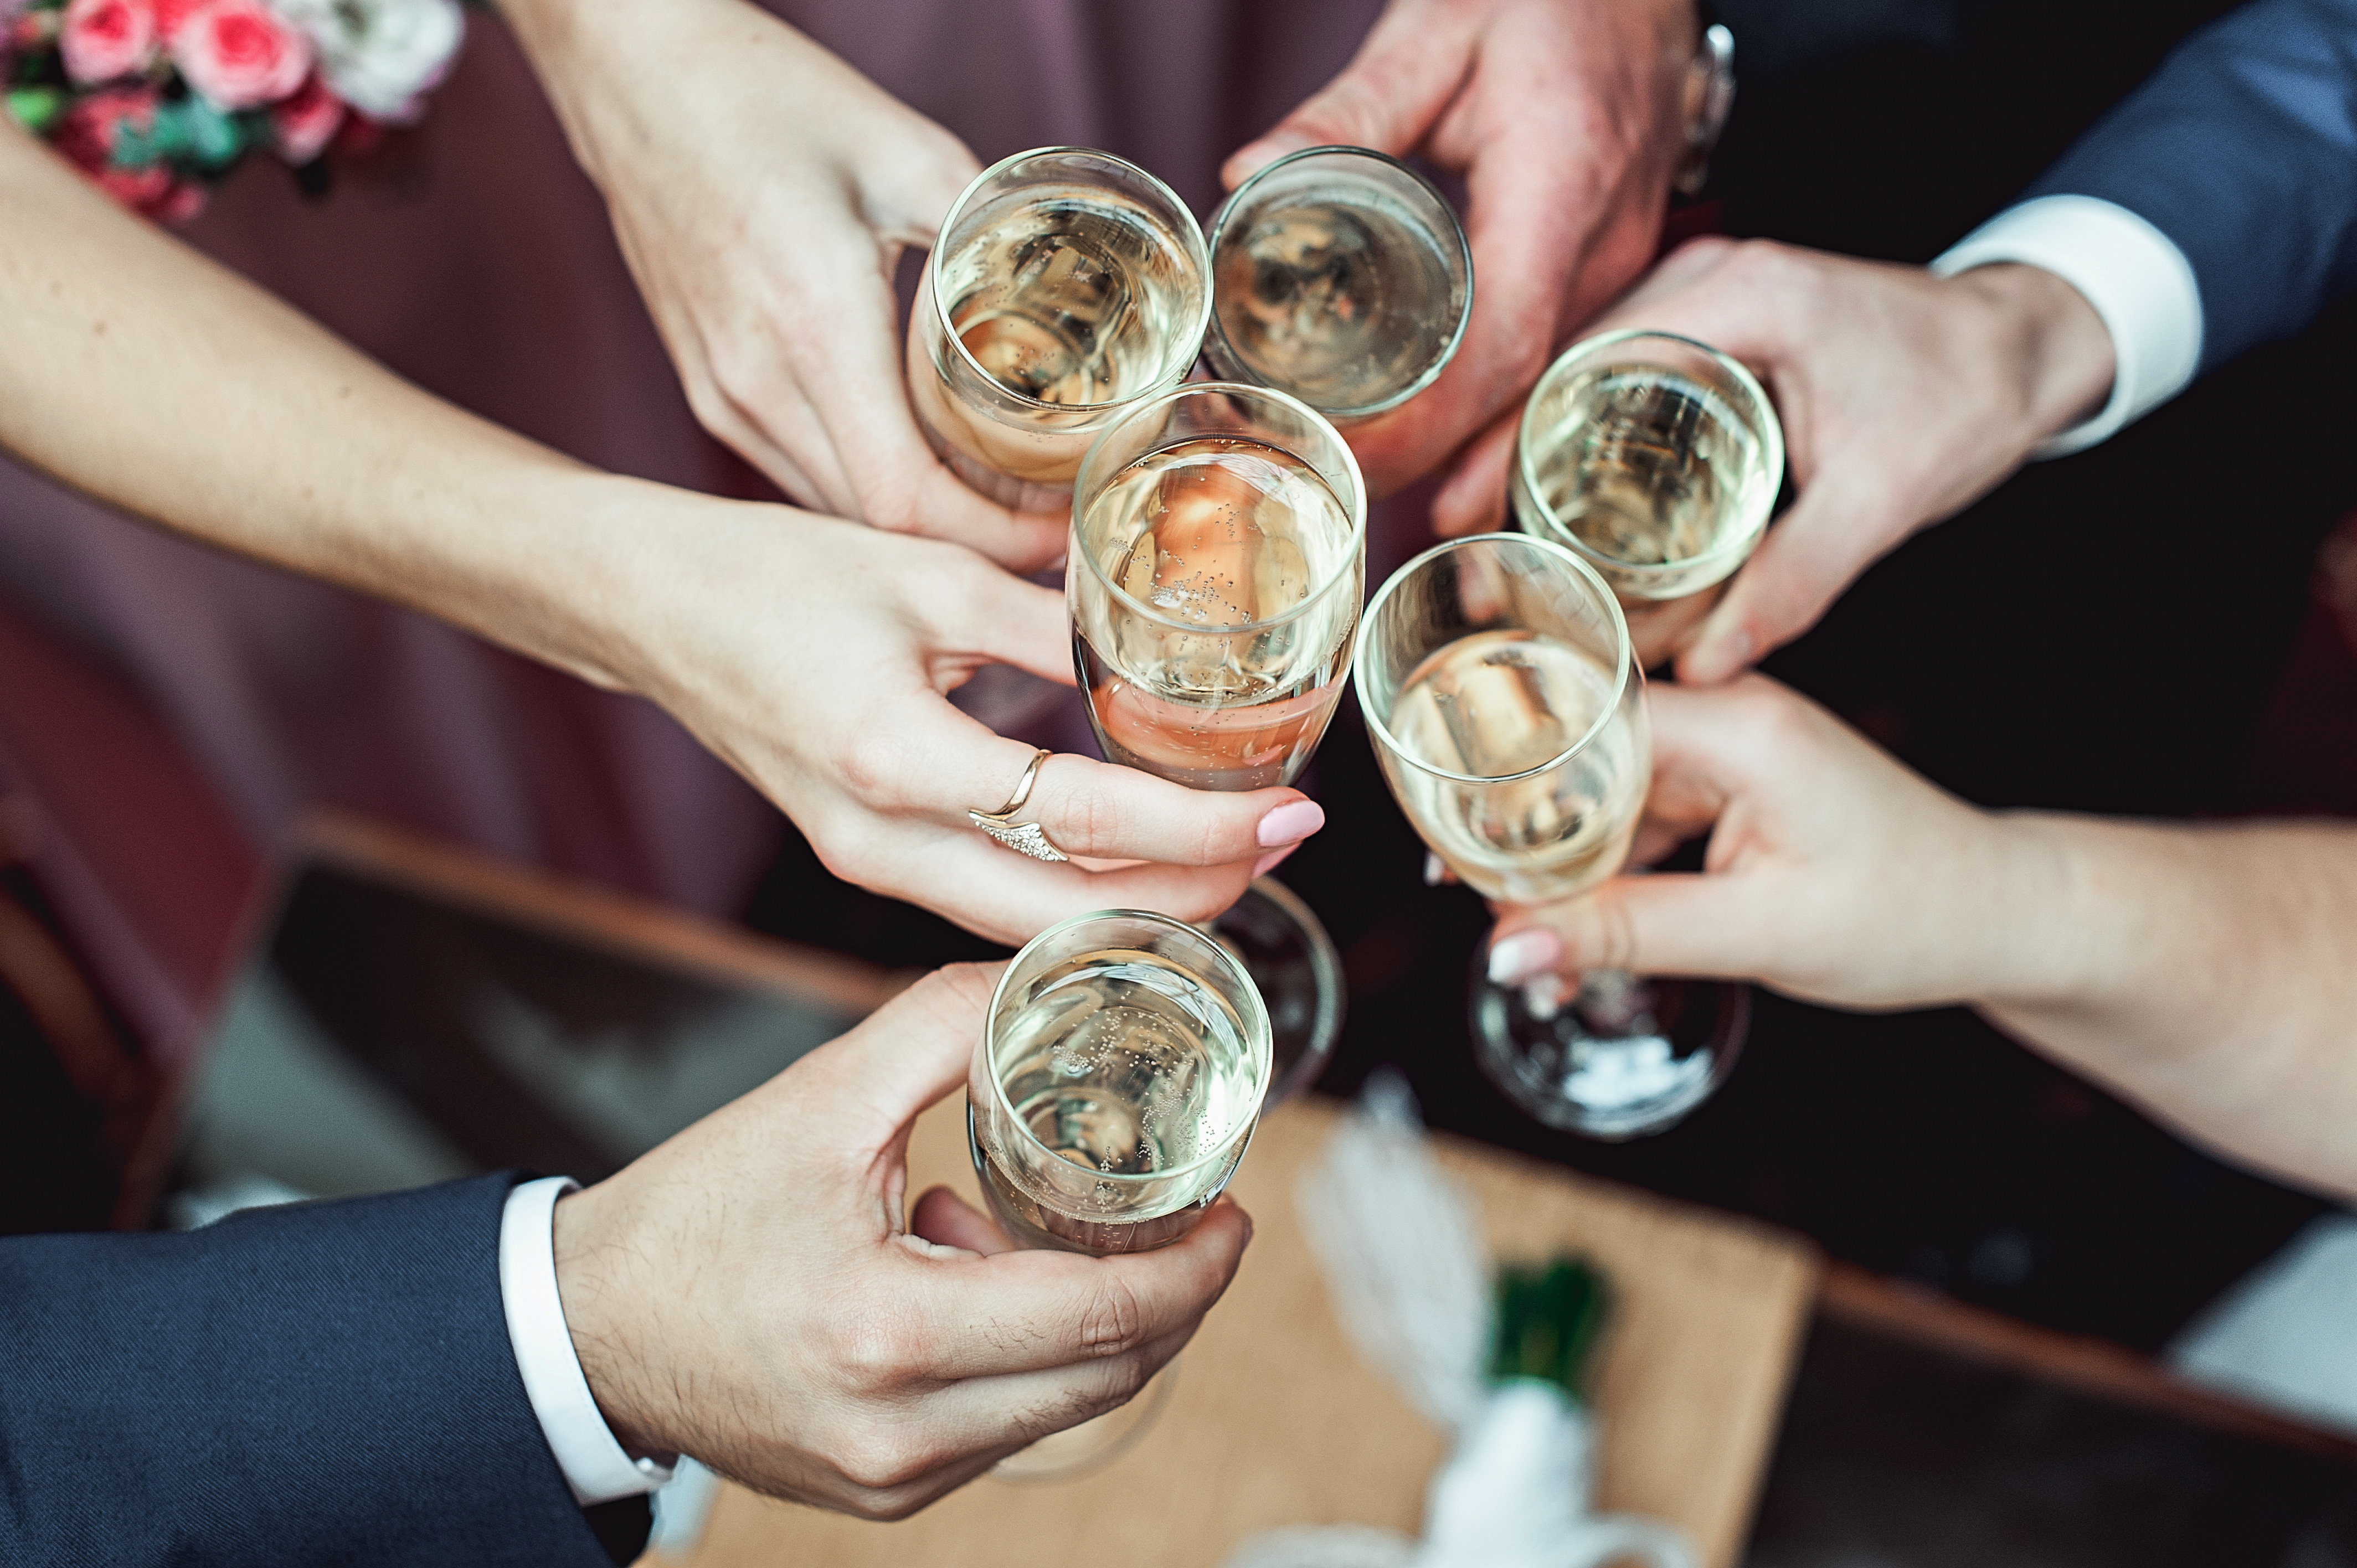 People-hold-in-hands-glasses-with-white-wine.-wedding-party.-659000066_4256x2832